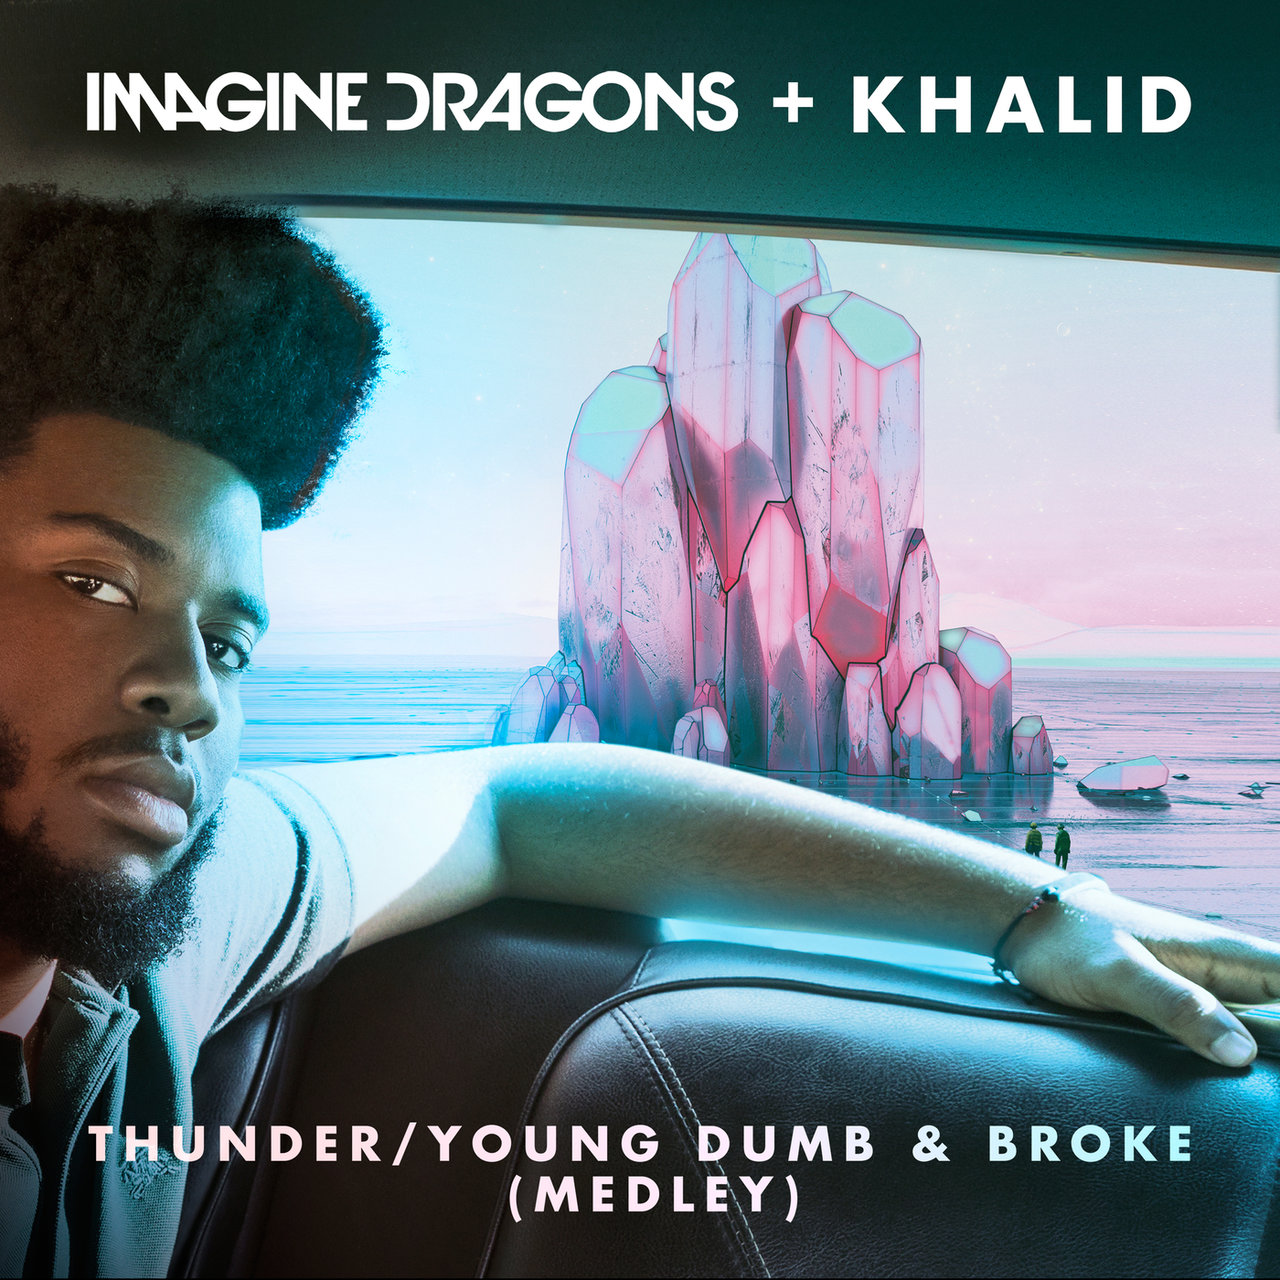 Thunder / Young Dumb & Broke (with Khalid) (Medley)